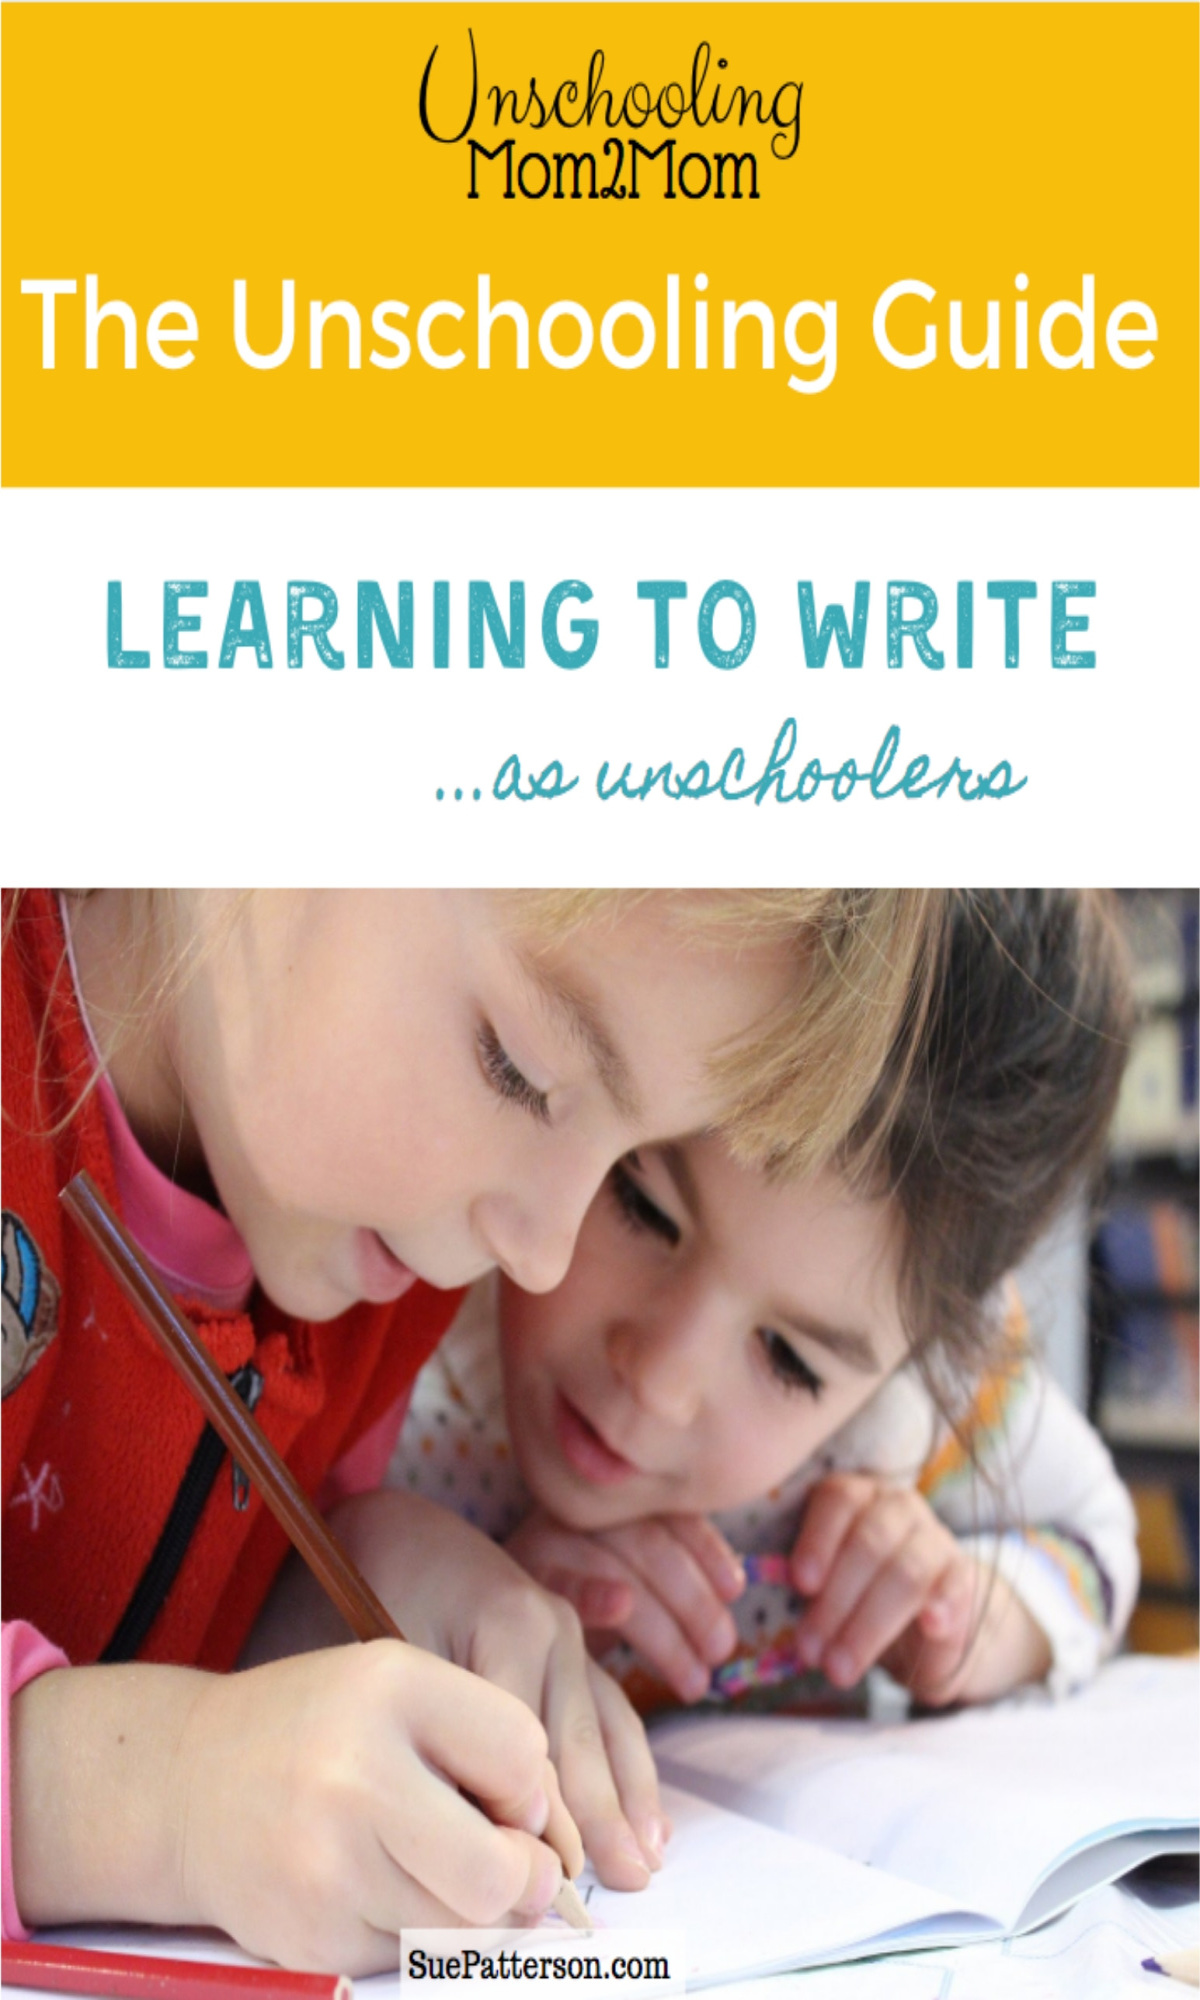 Learning to write as unschoolers - Unschooling Guide Cover